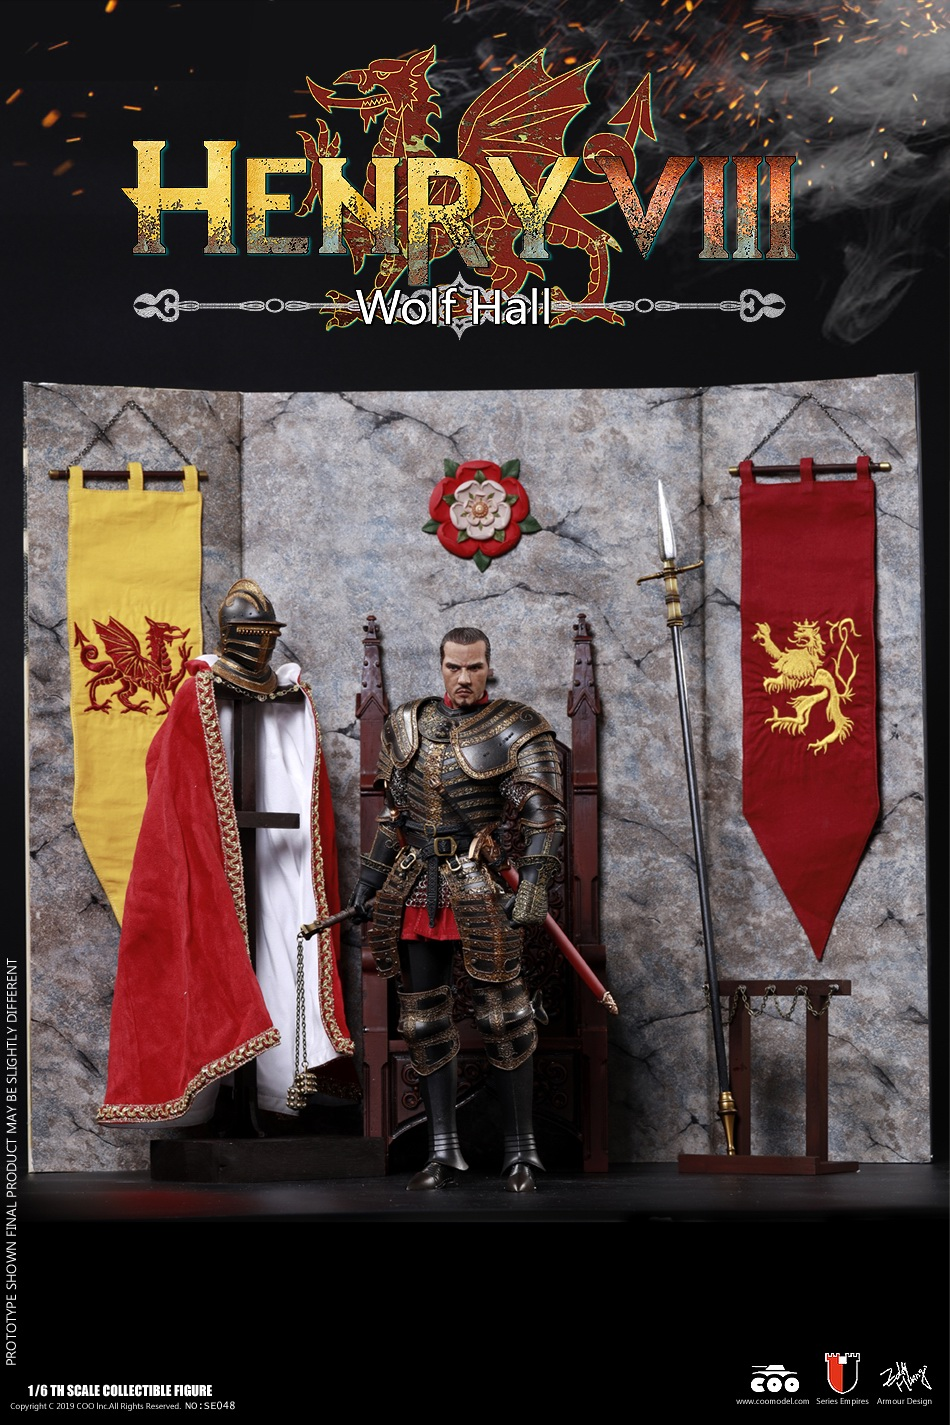 CooModel - NEW PRODUCT: COOMODEL: 1 / 6 alloy die-casting empire series - Henry VIII Lions version of the red dragon version of the Tudor version of the Wolf Hall scene 00374710